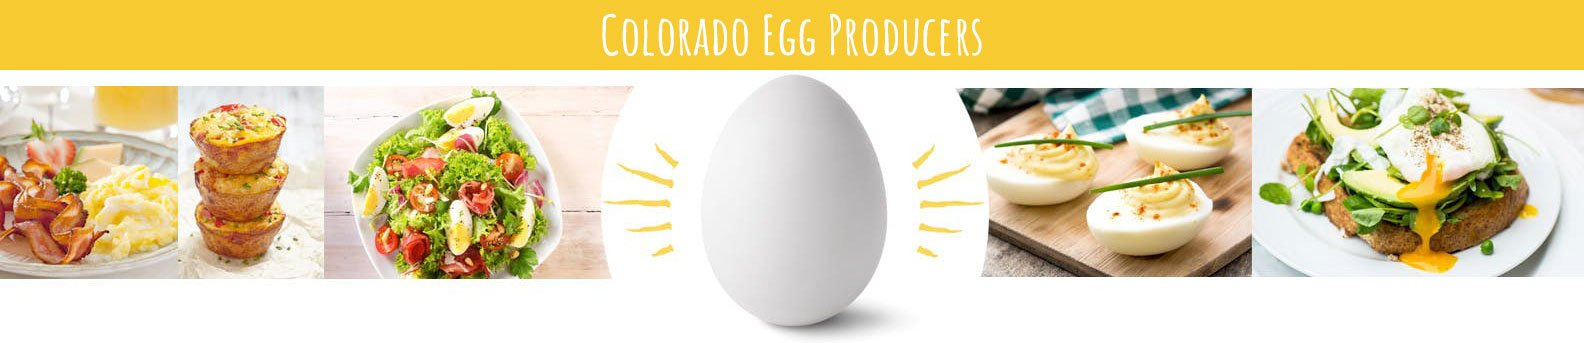 Cage Free Eggs Coming to Colorado, Best Egg Recipes, Healthy Egg Education, Egg Nutrition Education, Backhouse Marketing